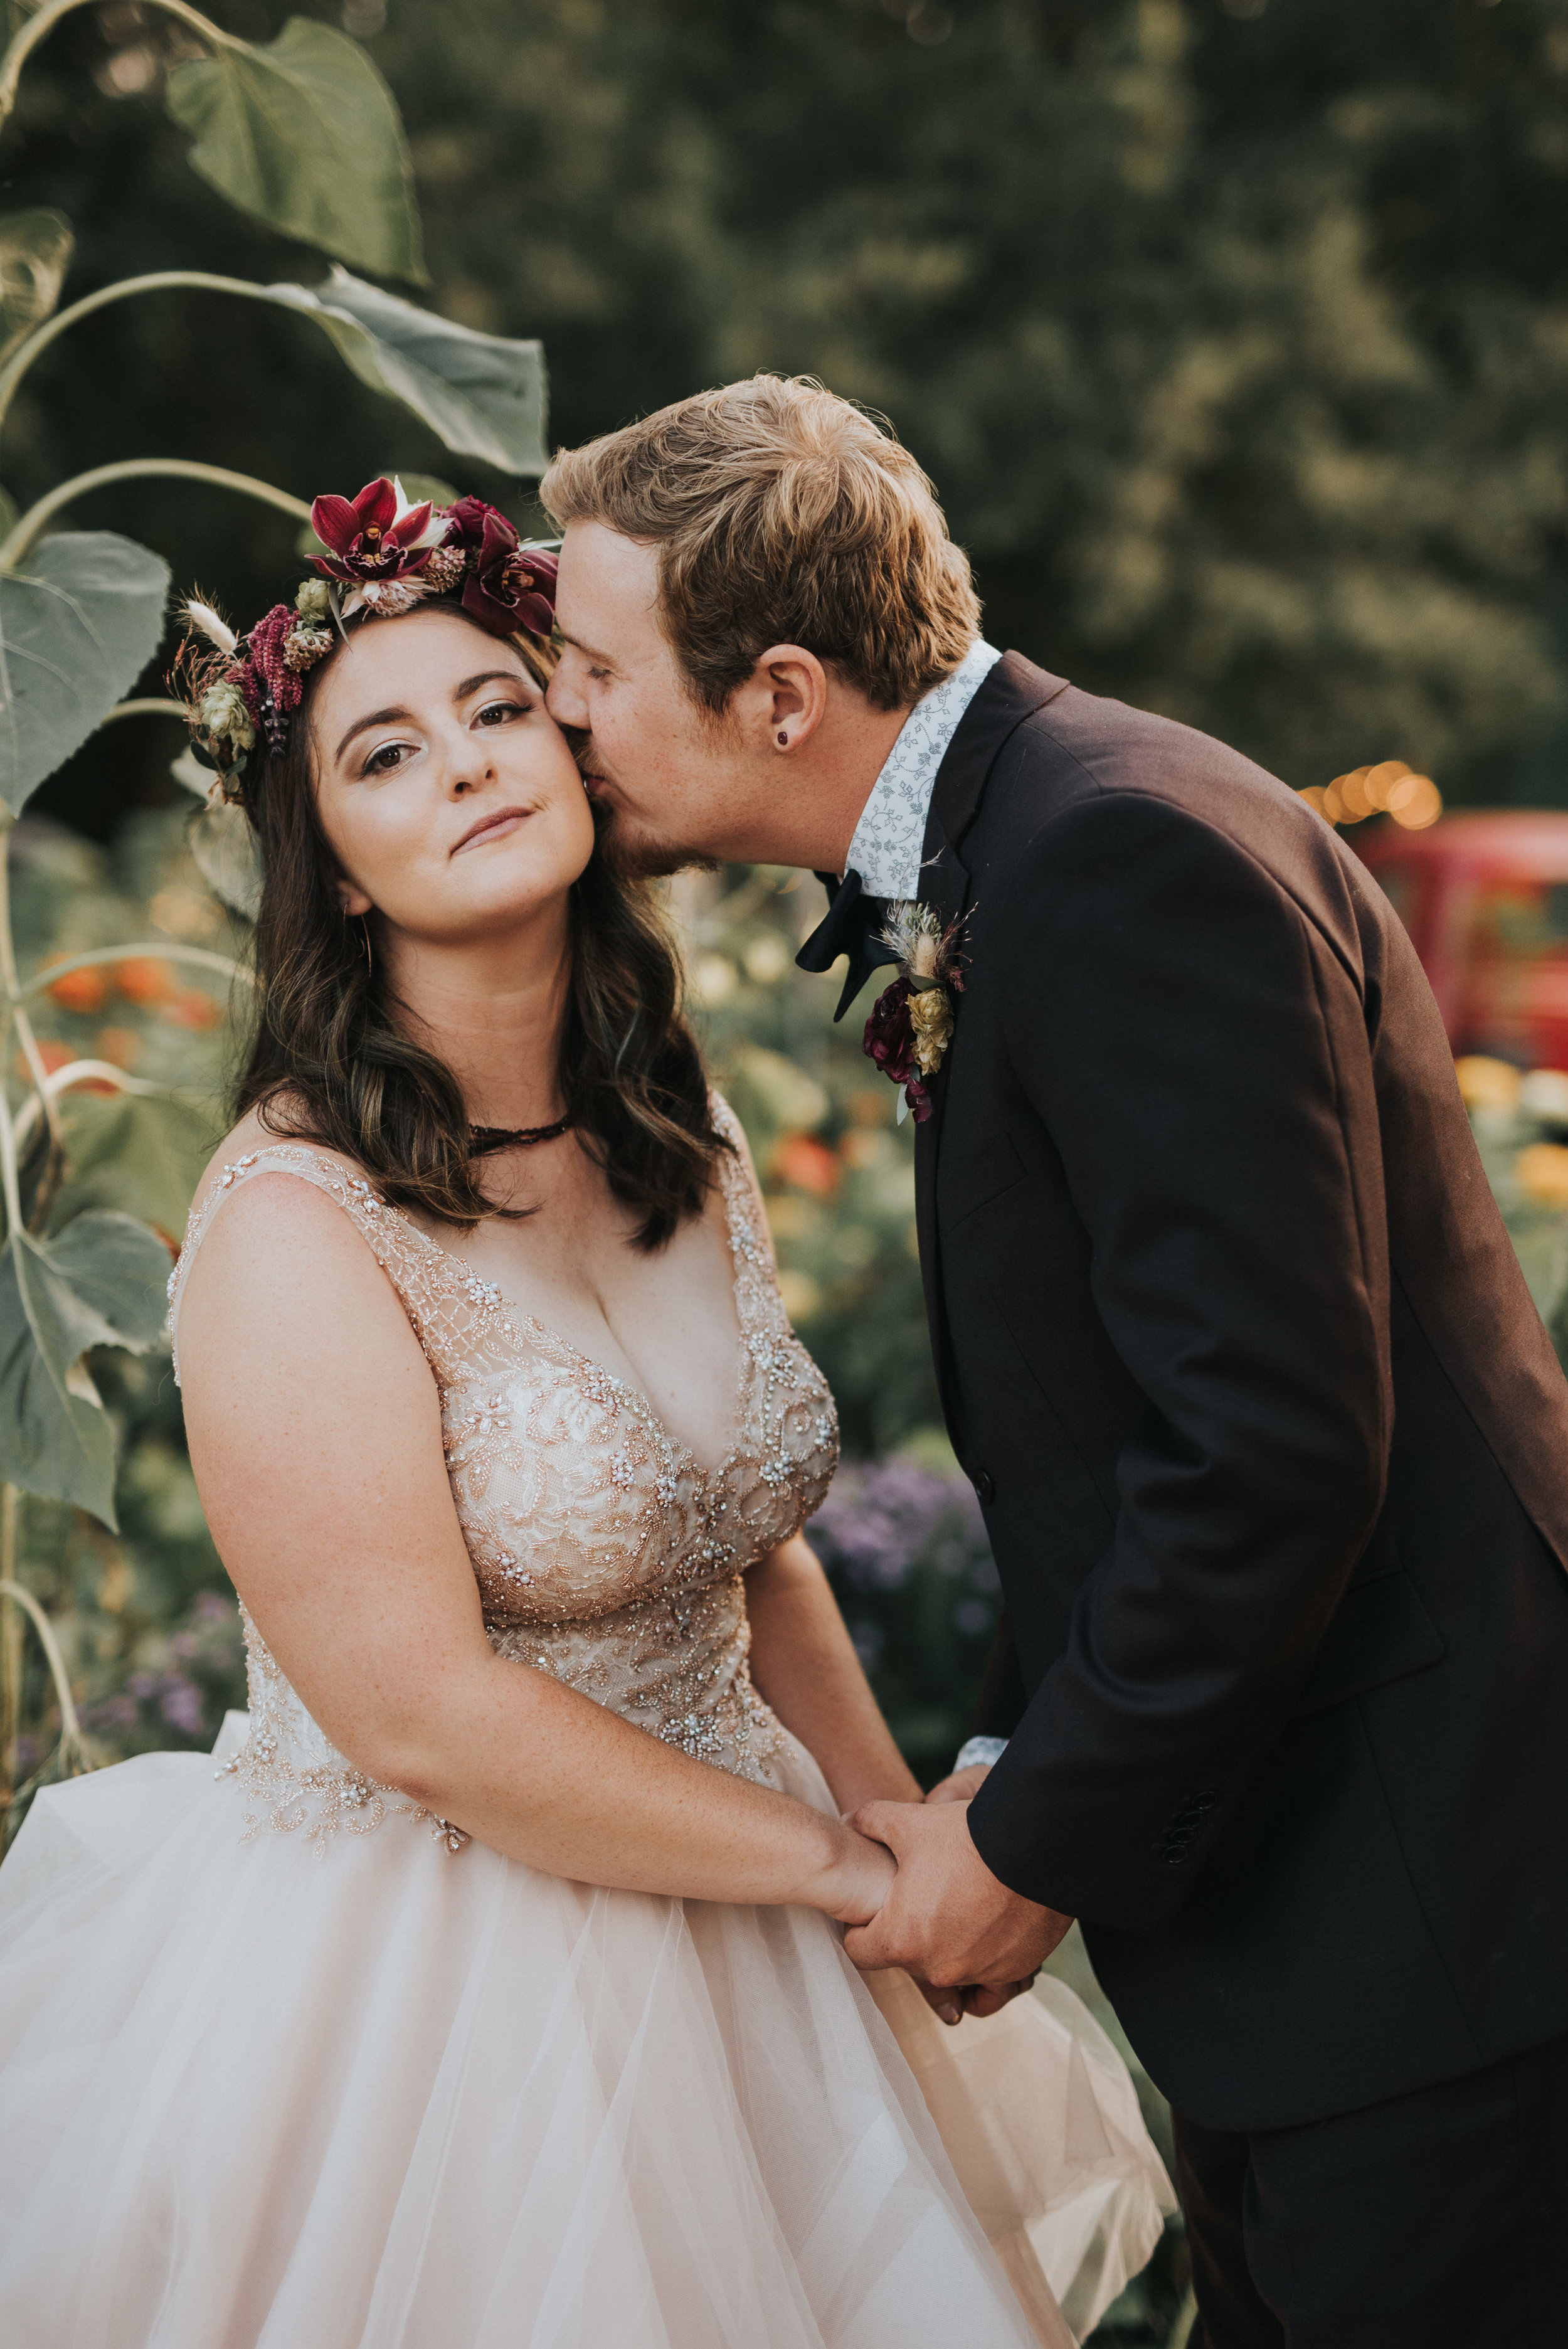 Flowers by Lace and Lilies, bridal bouquet, moody flowers, burgundy wedding, dusty colored wedding, pampas grass, lyons farmette wedding, colorado wedding, anemone, amnesia roses, bride and groom, first look, wedding photography, flower crown, jewel tones, big floral crown